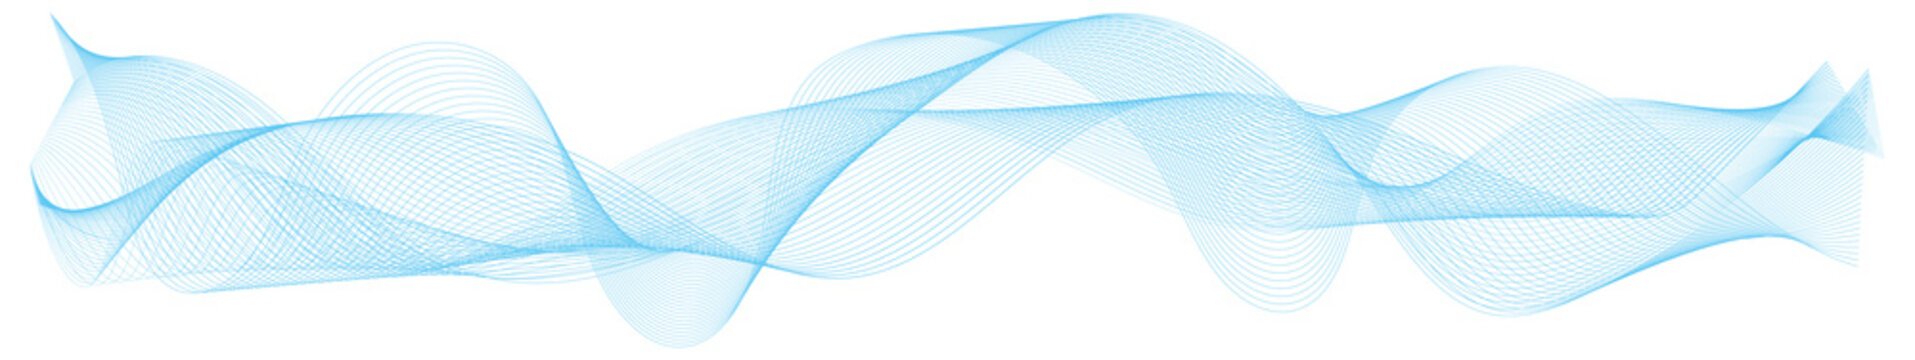 abstract blue wave lines frame on white background